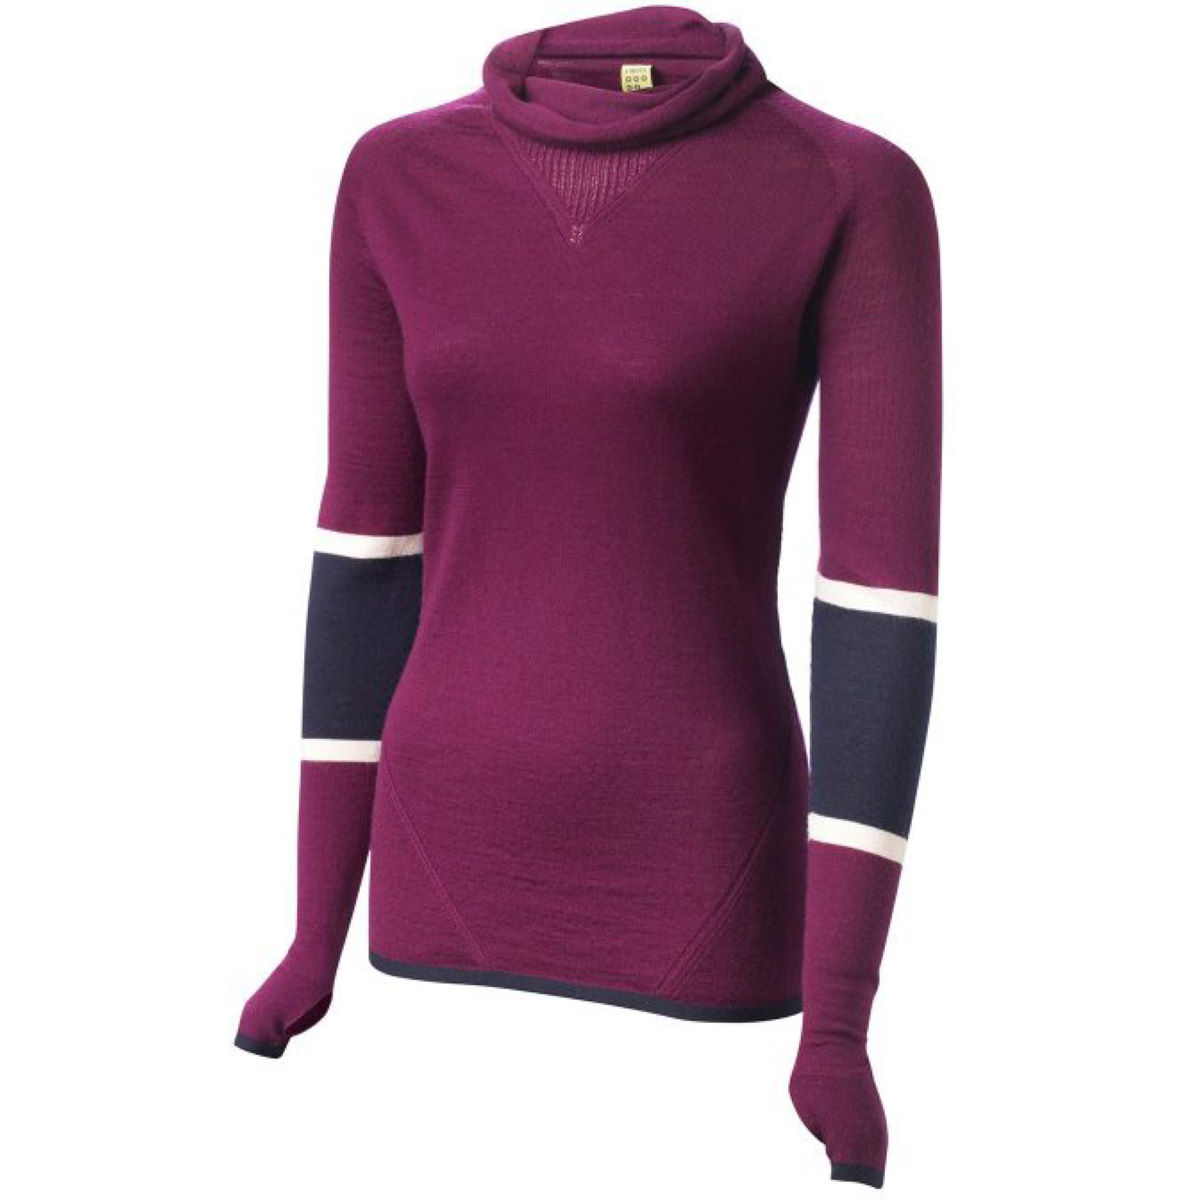 Maillot Femme FINDRA Marin (col roulé, rayé) - L Eggplant Maillots